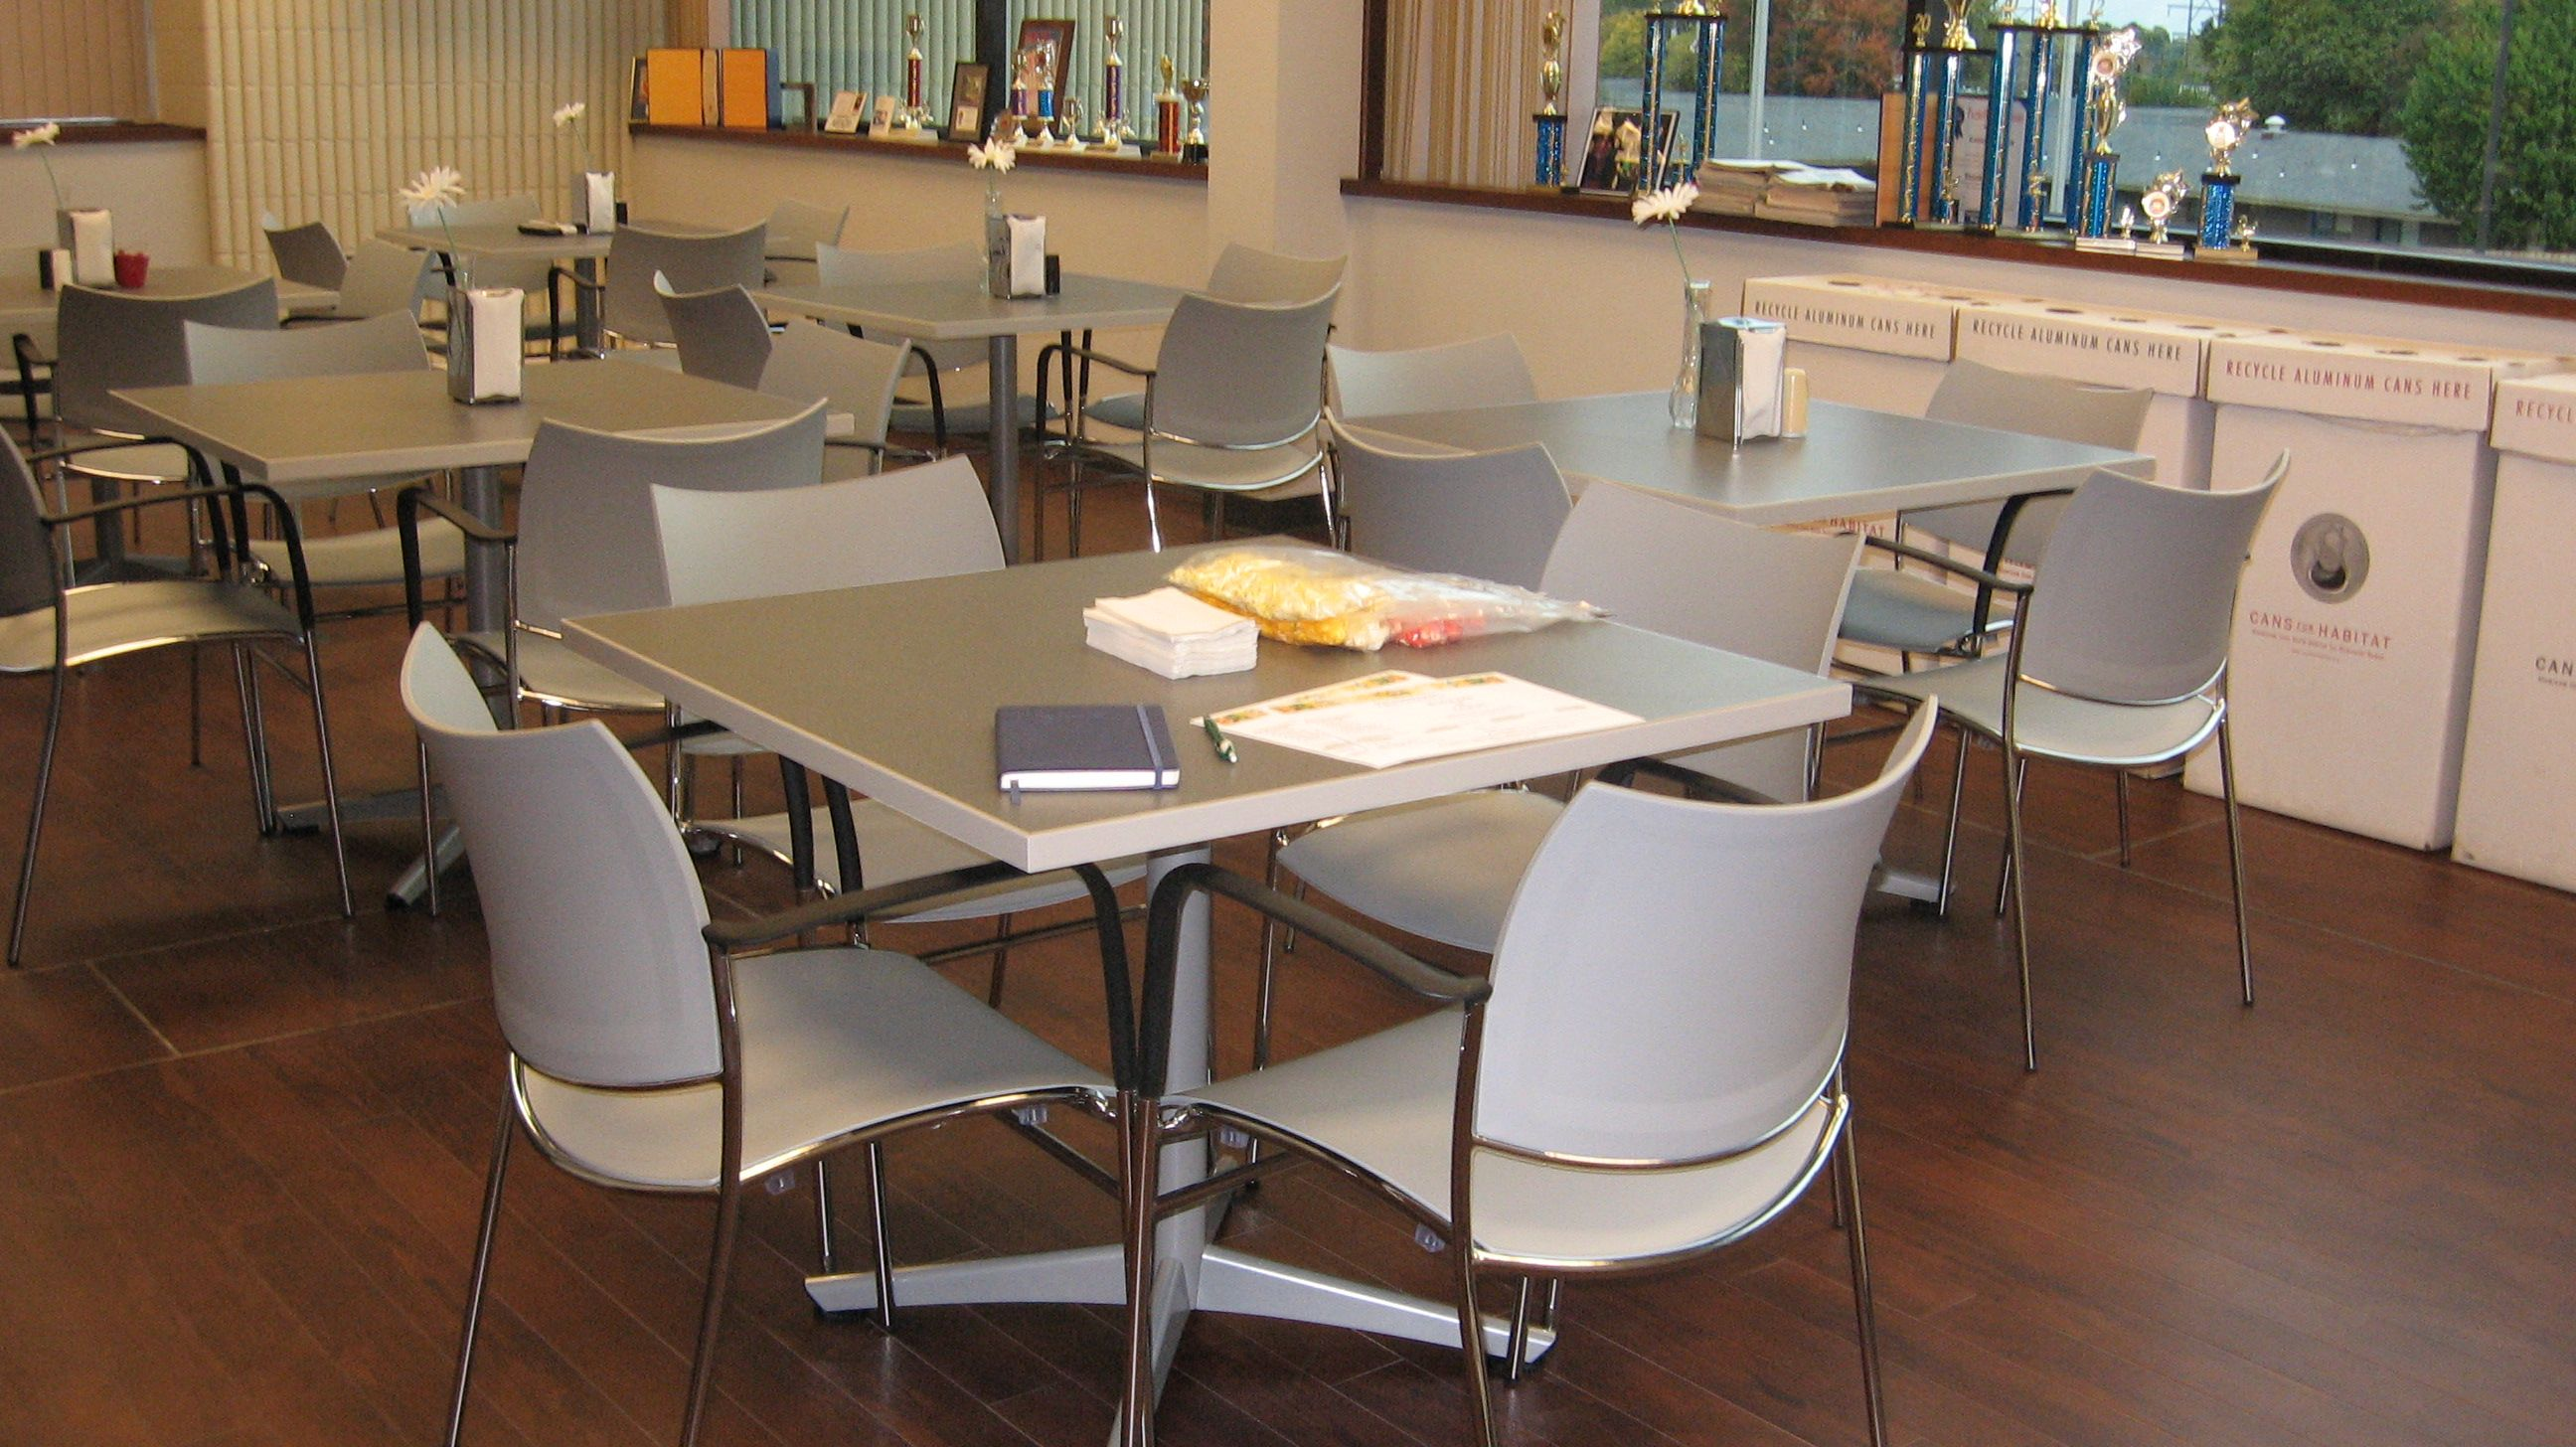 Commerce Bank Springfield MO Upwards Chairs And WaveWorks Table In Cafeteria Dining